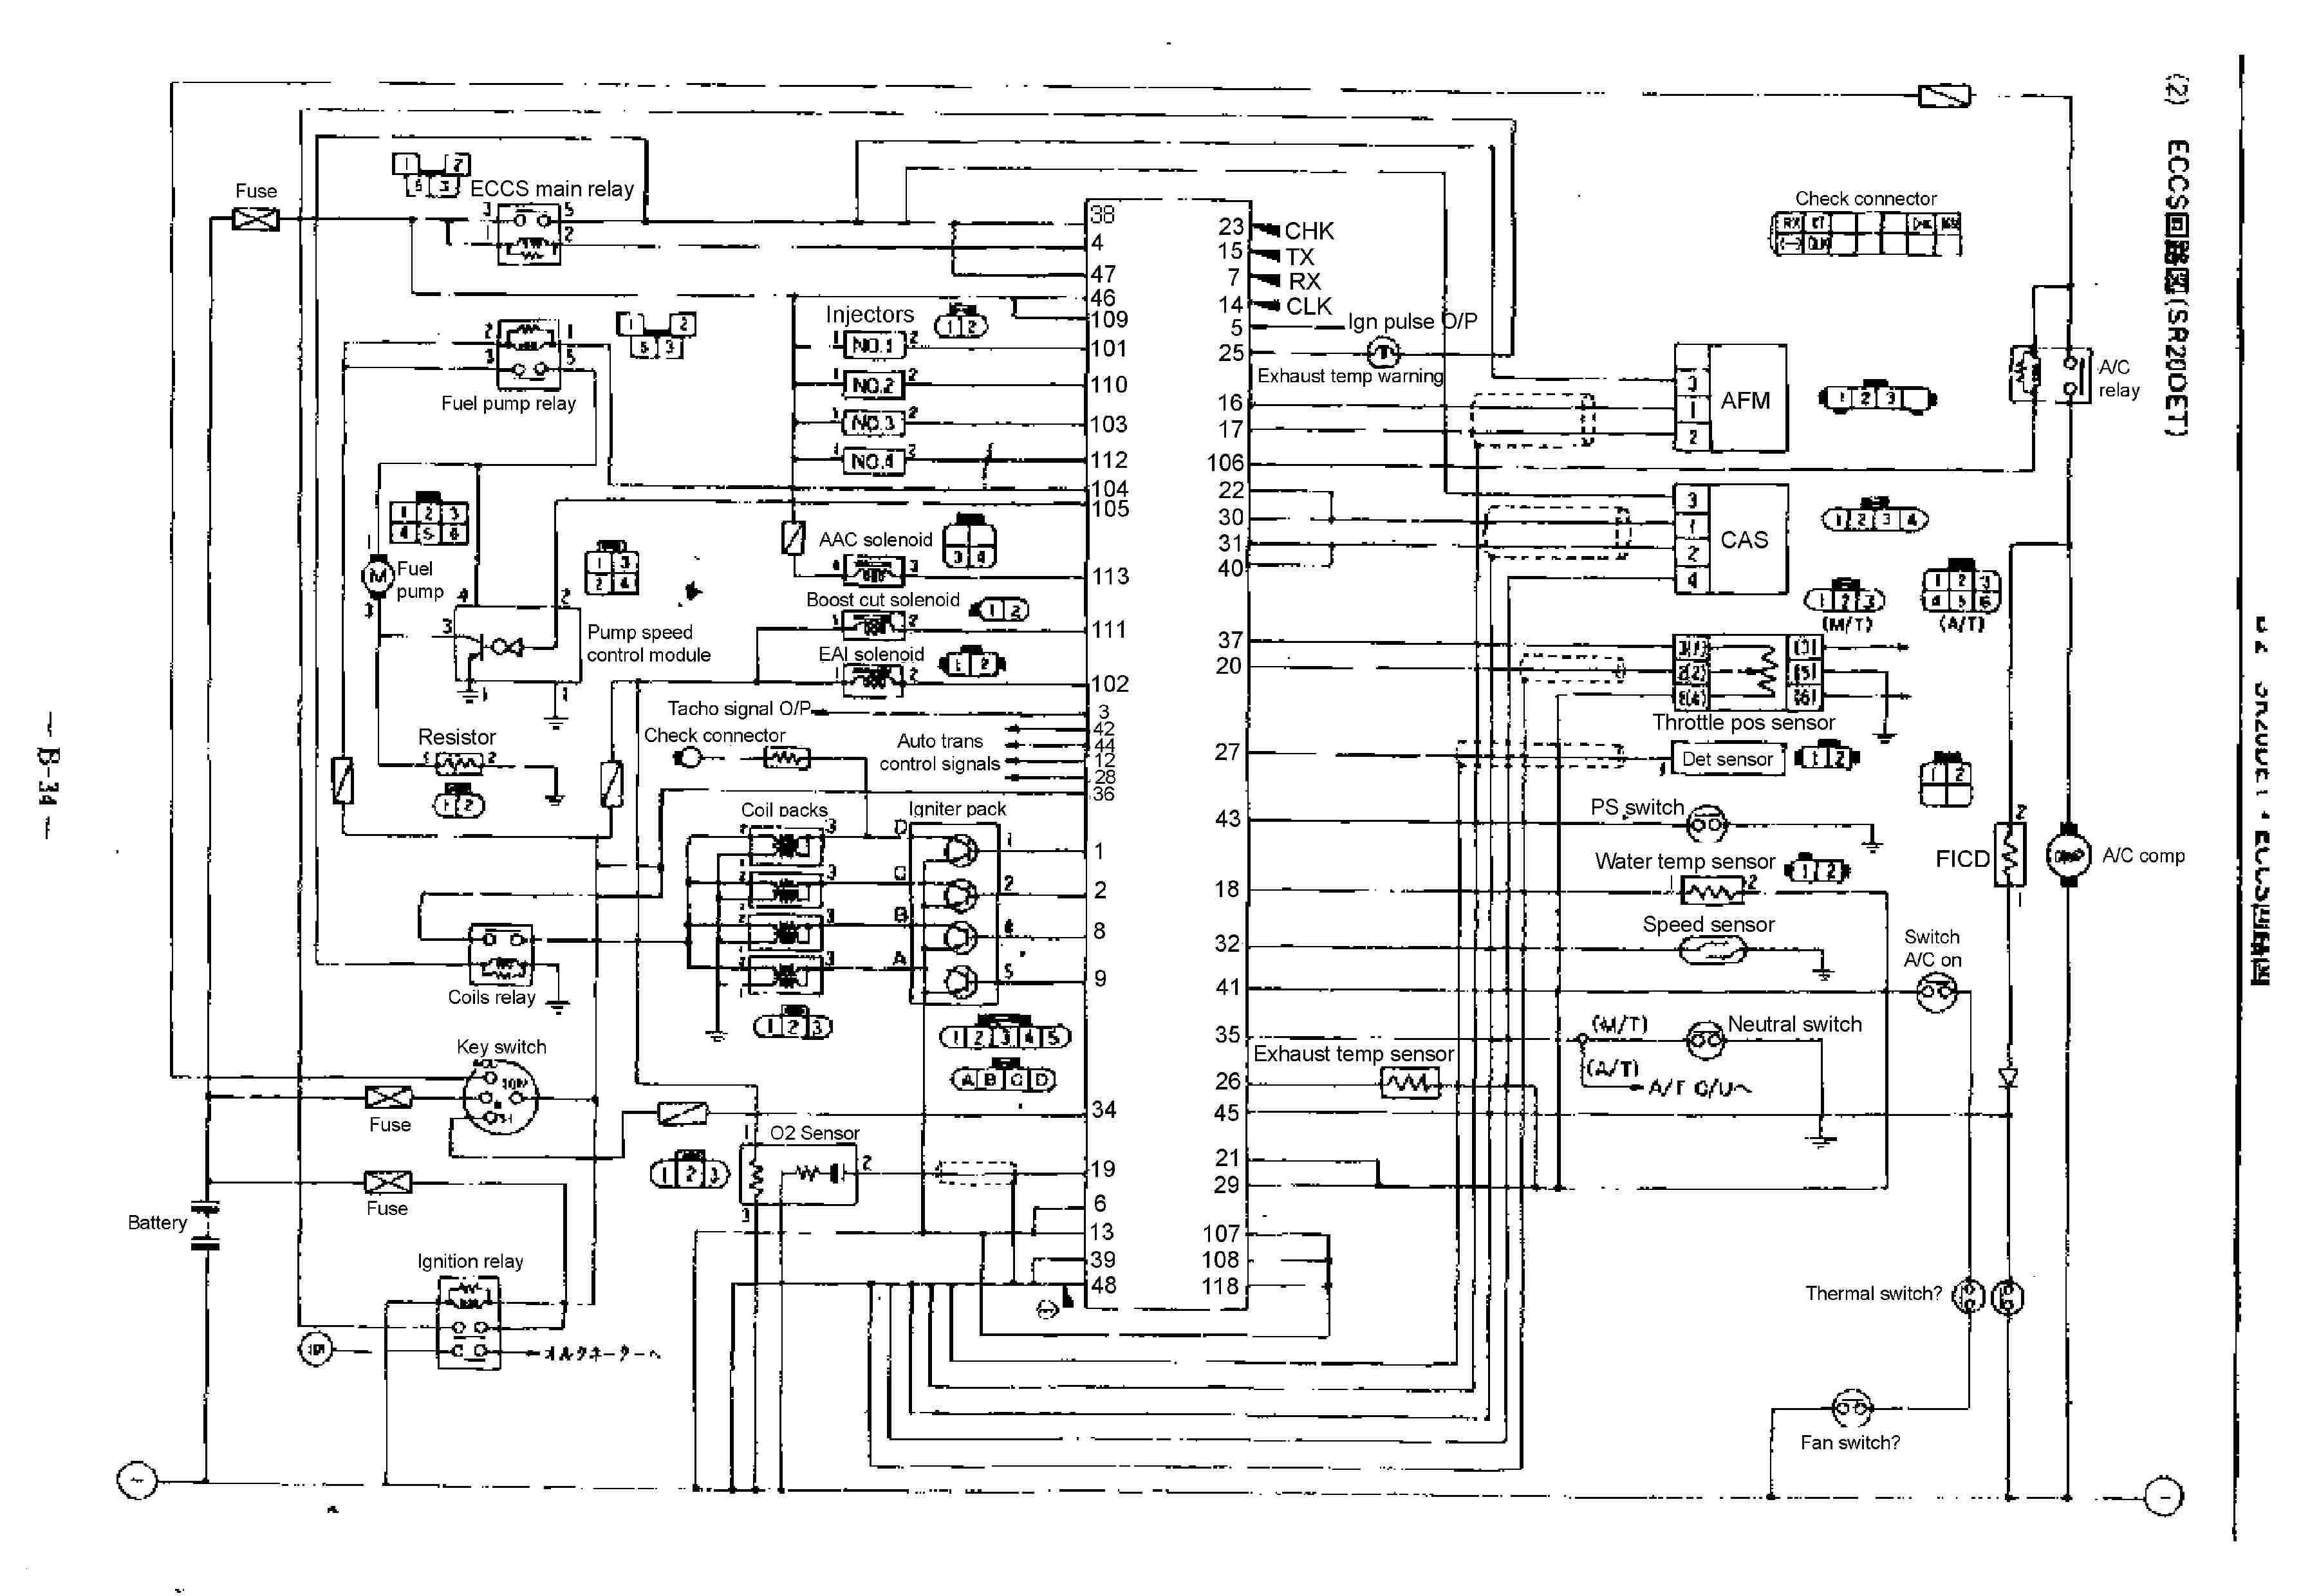 Diagram Of Car for Accident Automotive Wiring Diagrams Schaferforcongressfo Of Diagram Of Car for Accident Accident Diagram Fresh Accident Diagram Examples originalstylophone